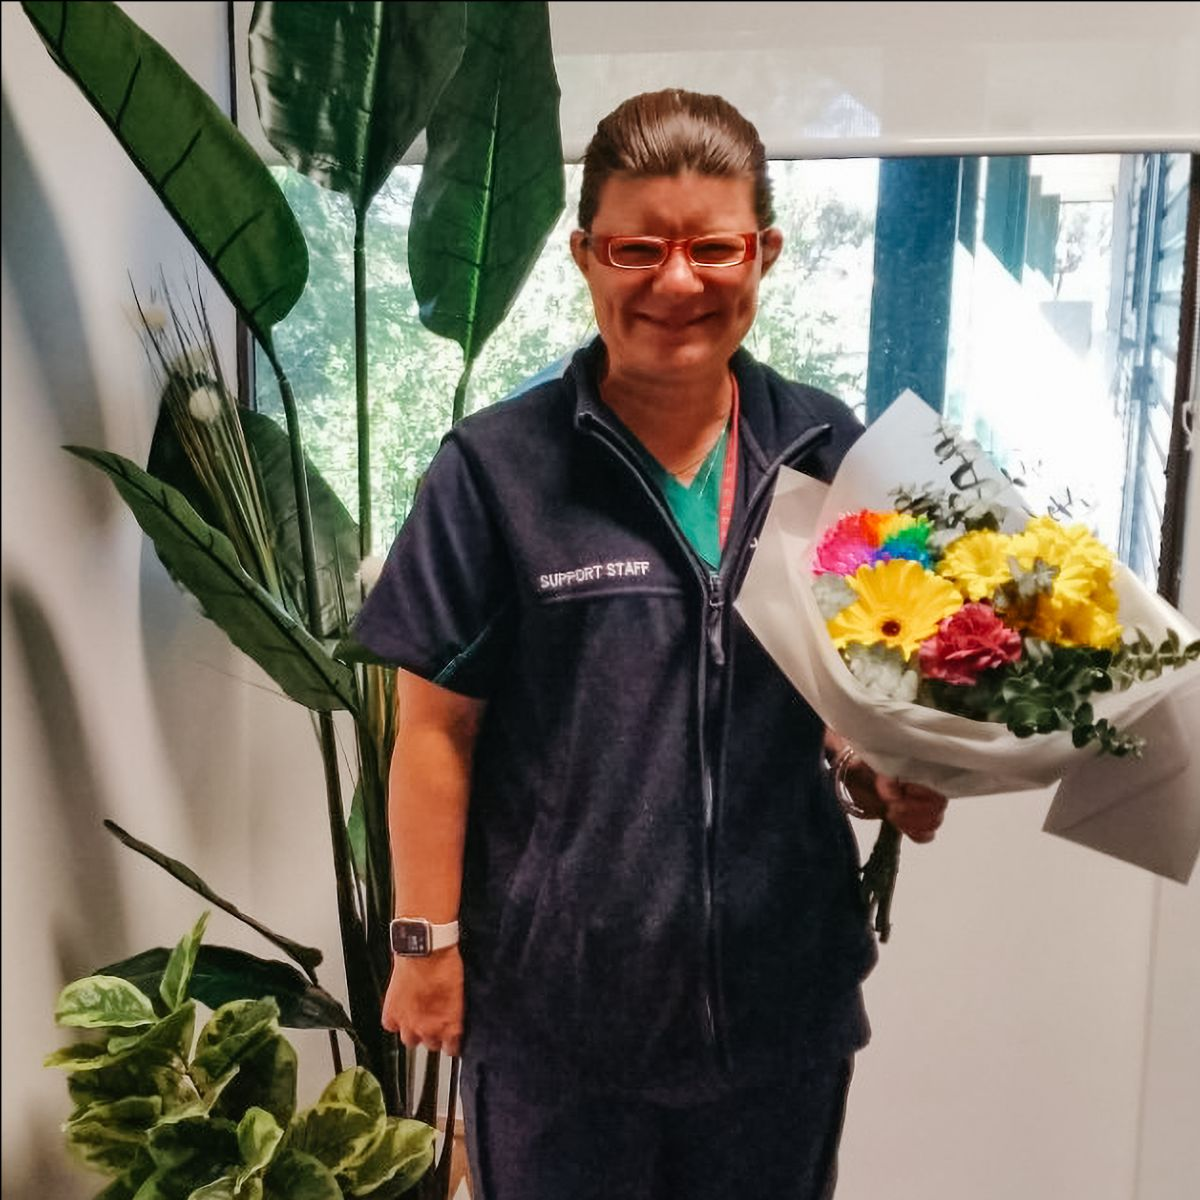 Jodie smiles as she holds a large bouquet of flowers